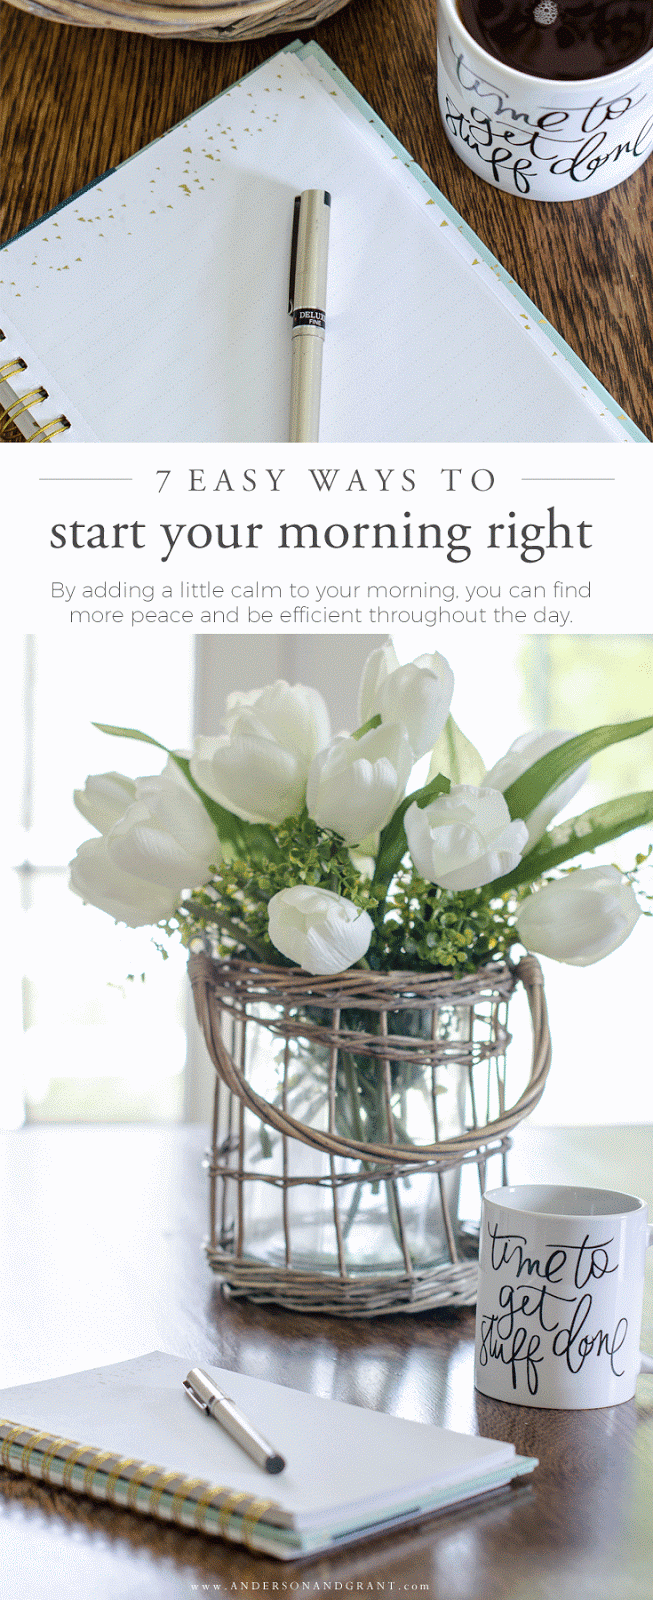 Simplify your life and find peace each day with these seven tips for creating a morning routine #morningroutine #simplifiedlife #simplify #routines #andersonandgrant